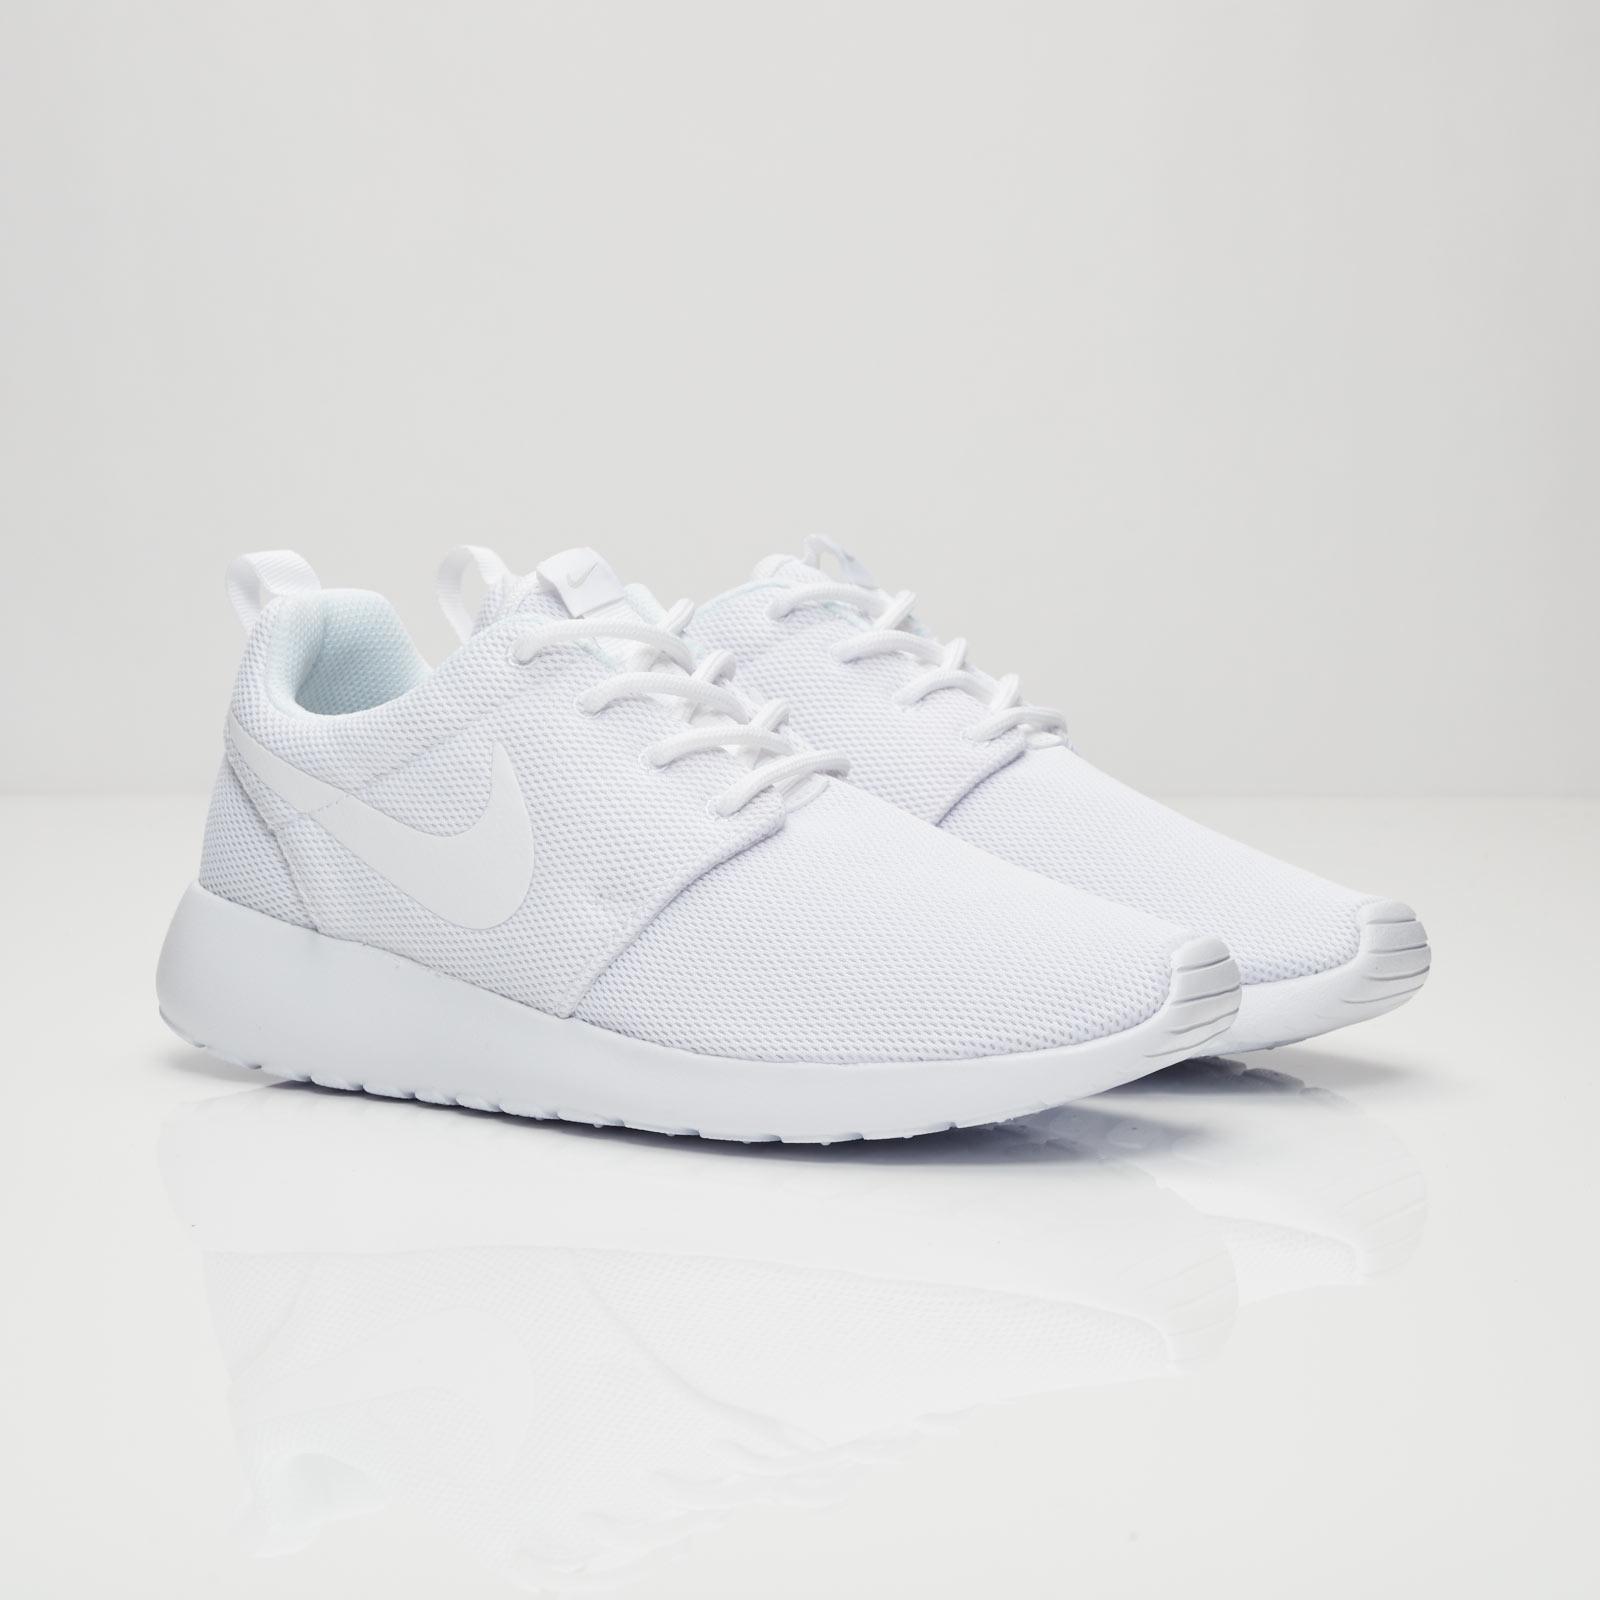 6f9482bca5d Nike Wmns Roshe One - 844994-100 - Sneakersnstuff